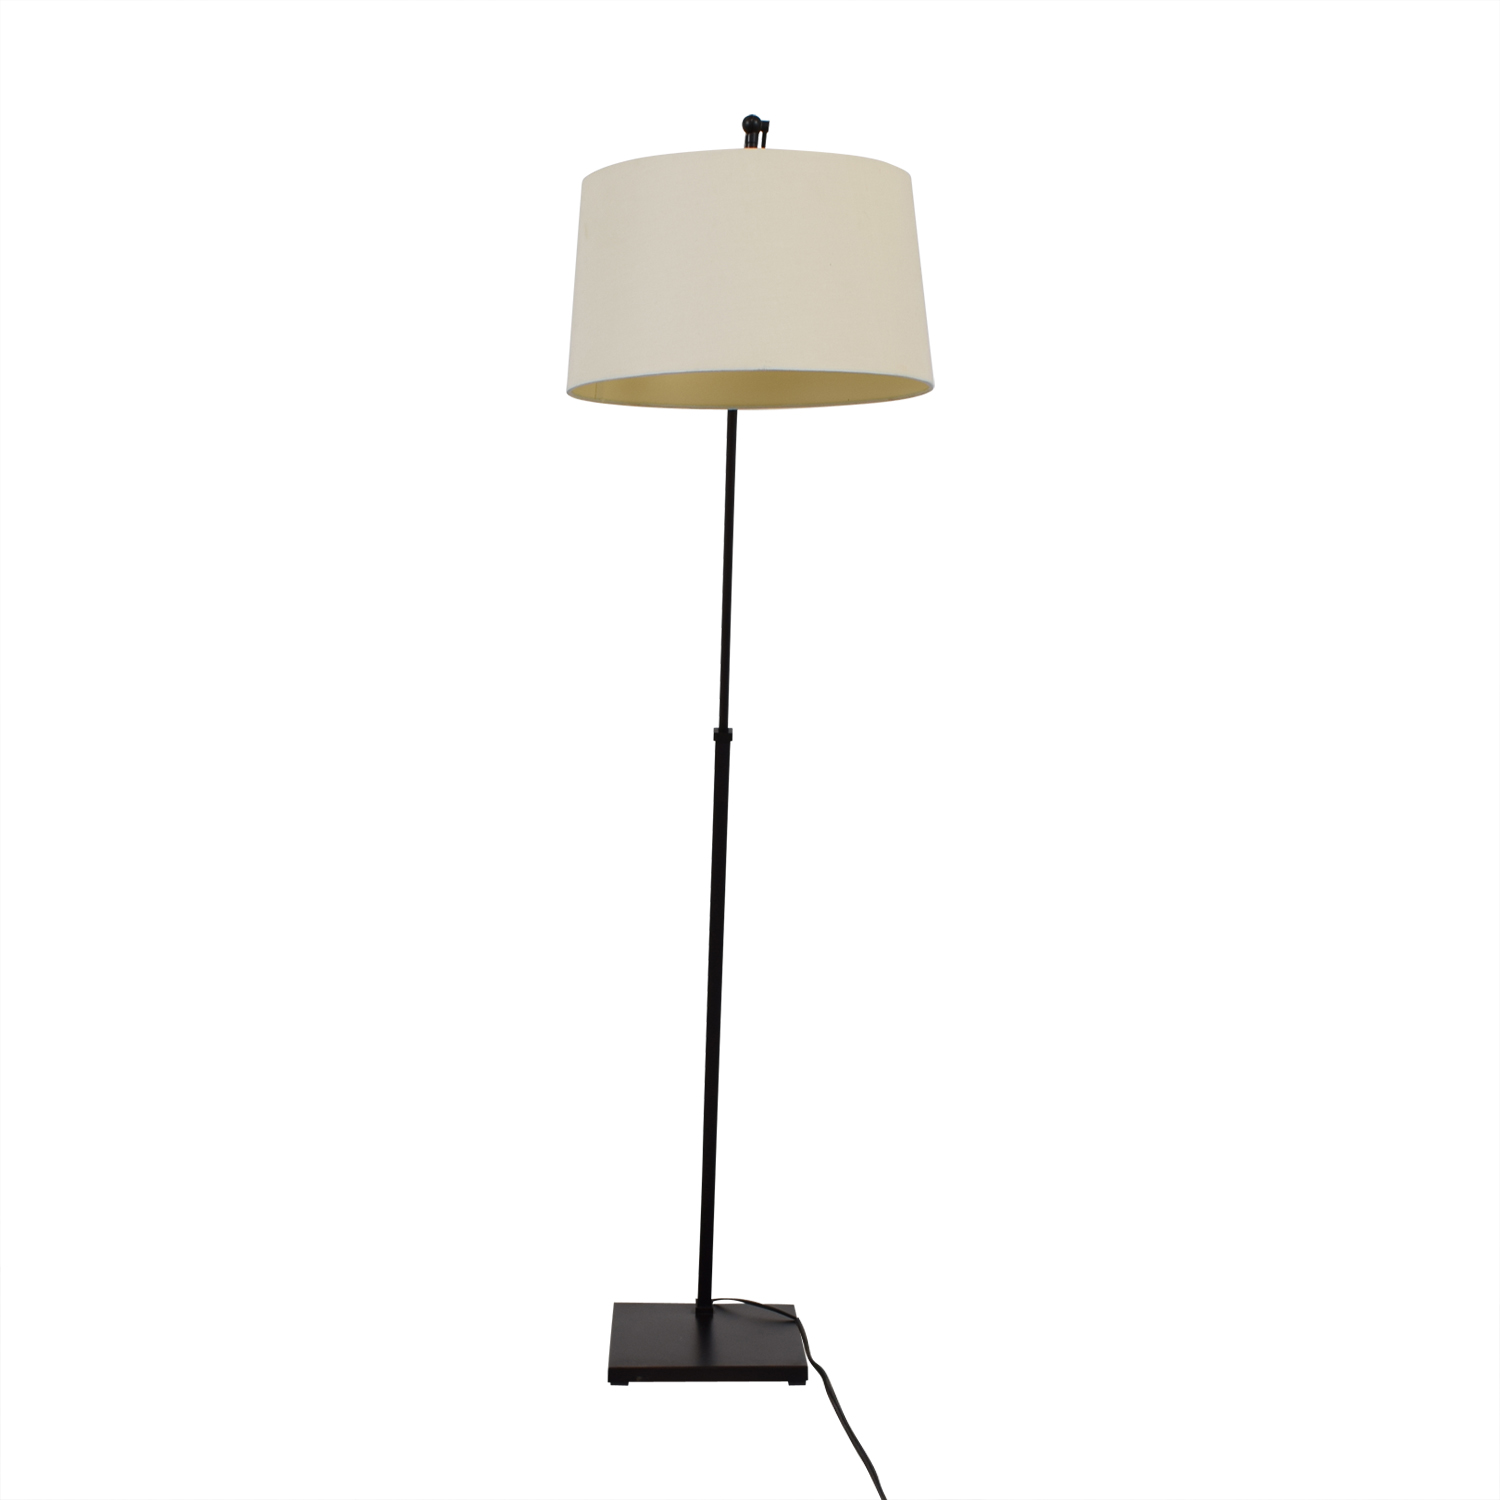 buy Crate & Barrel Dexter Arc Floor Lamp with White Shade Crate & Barrel Lamps